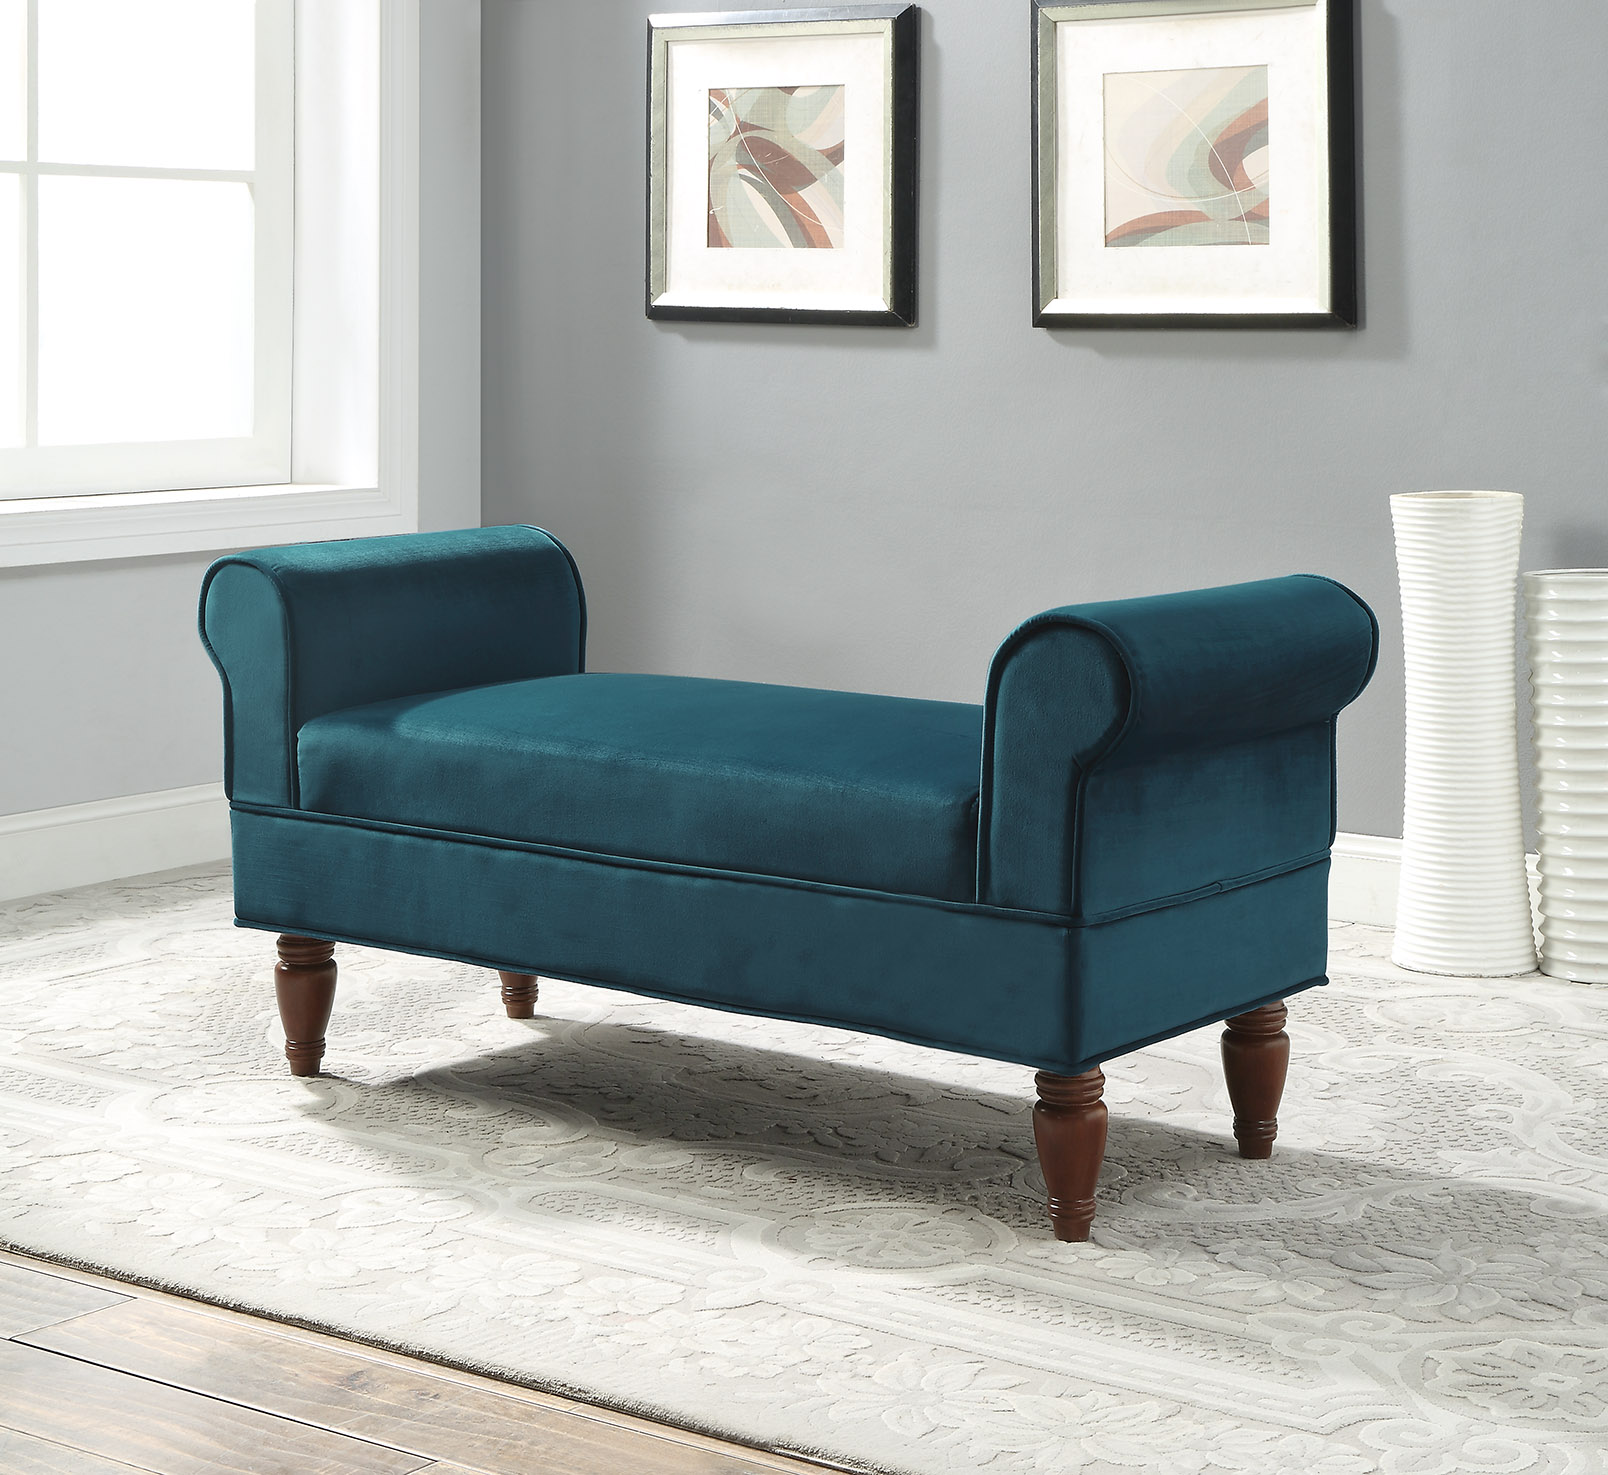 Linon Lillian Rolled Arm Upholstered Bench, Multiple Colors